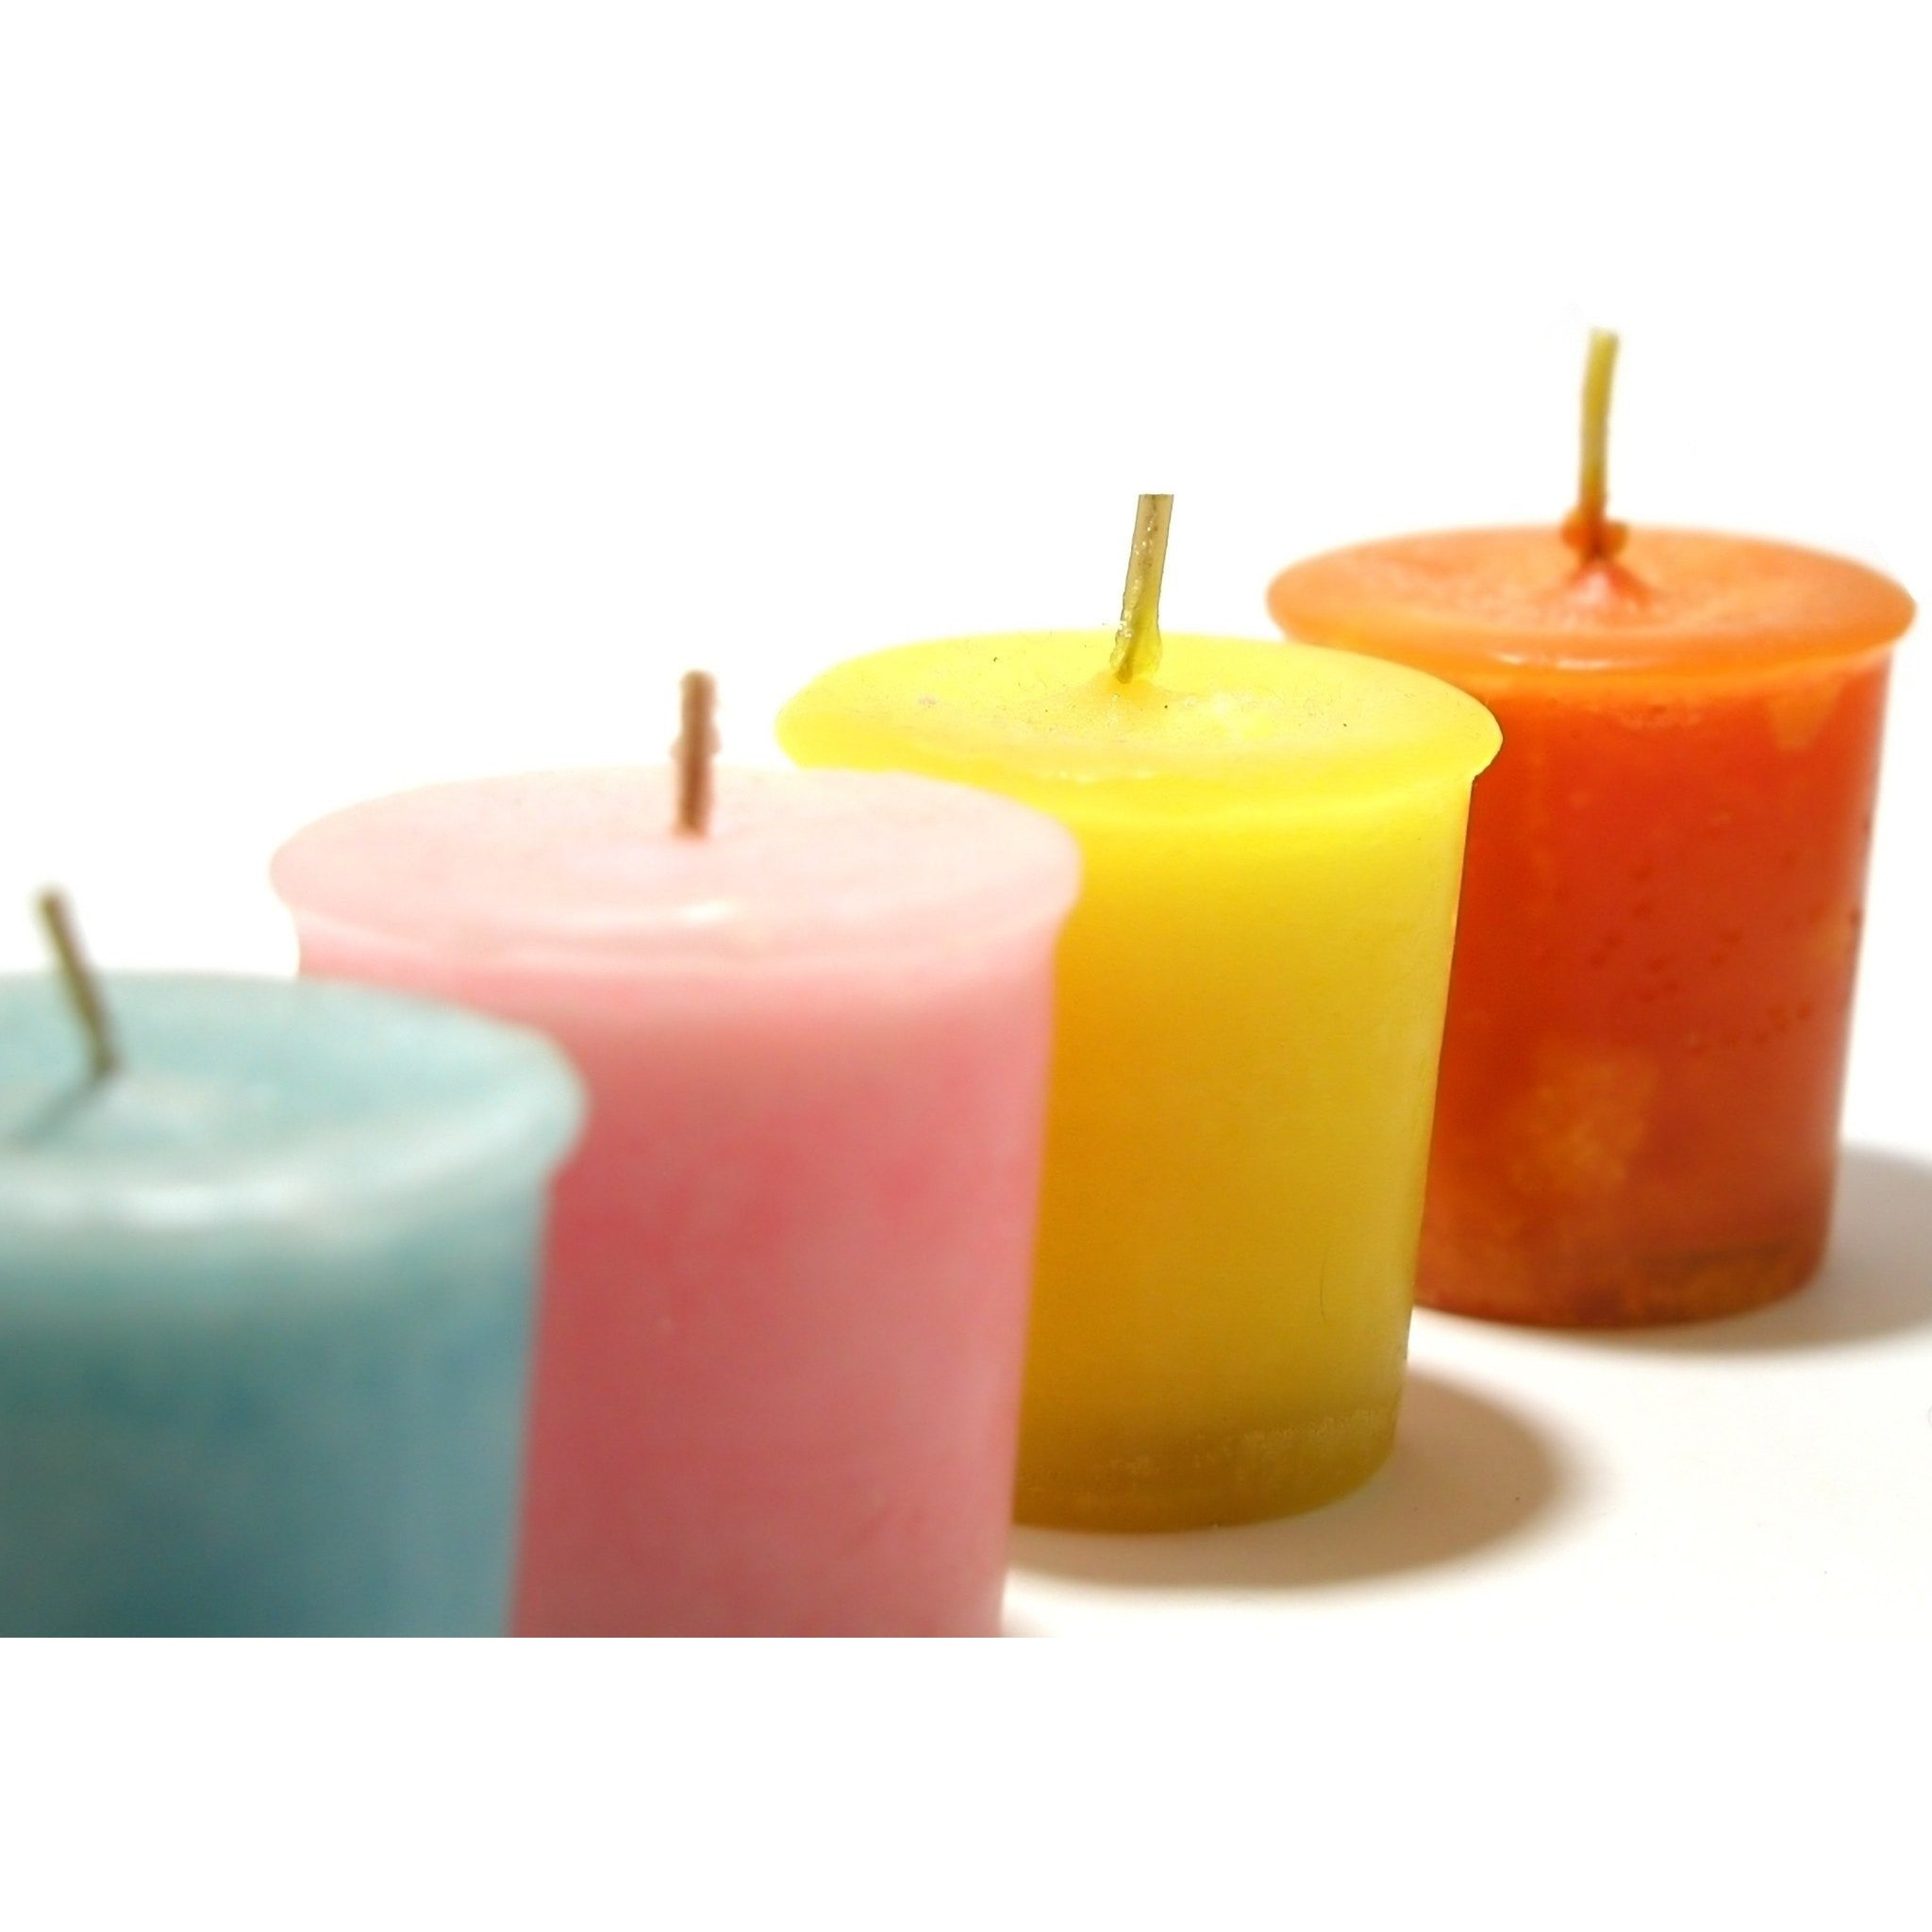 Summer Strawberry Natural Hand Poured Soy Candles - Votive-Single - Bella-Mia Naturals All Natural Soy Candles & Lip Balms - 10